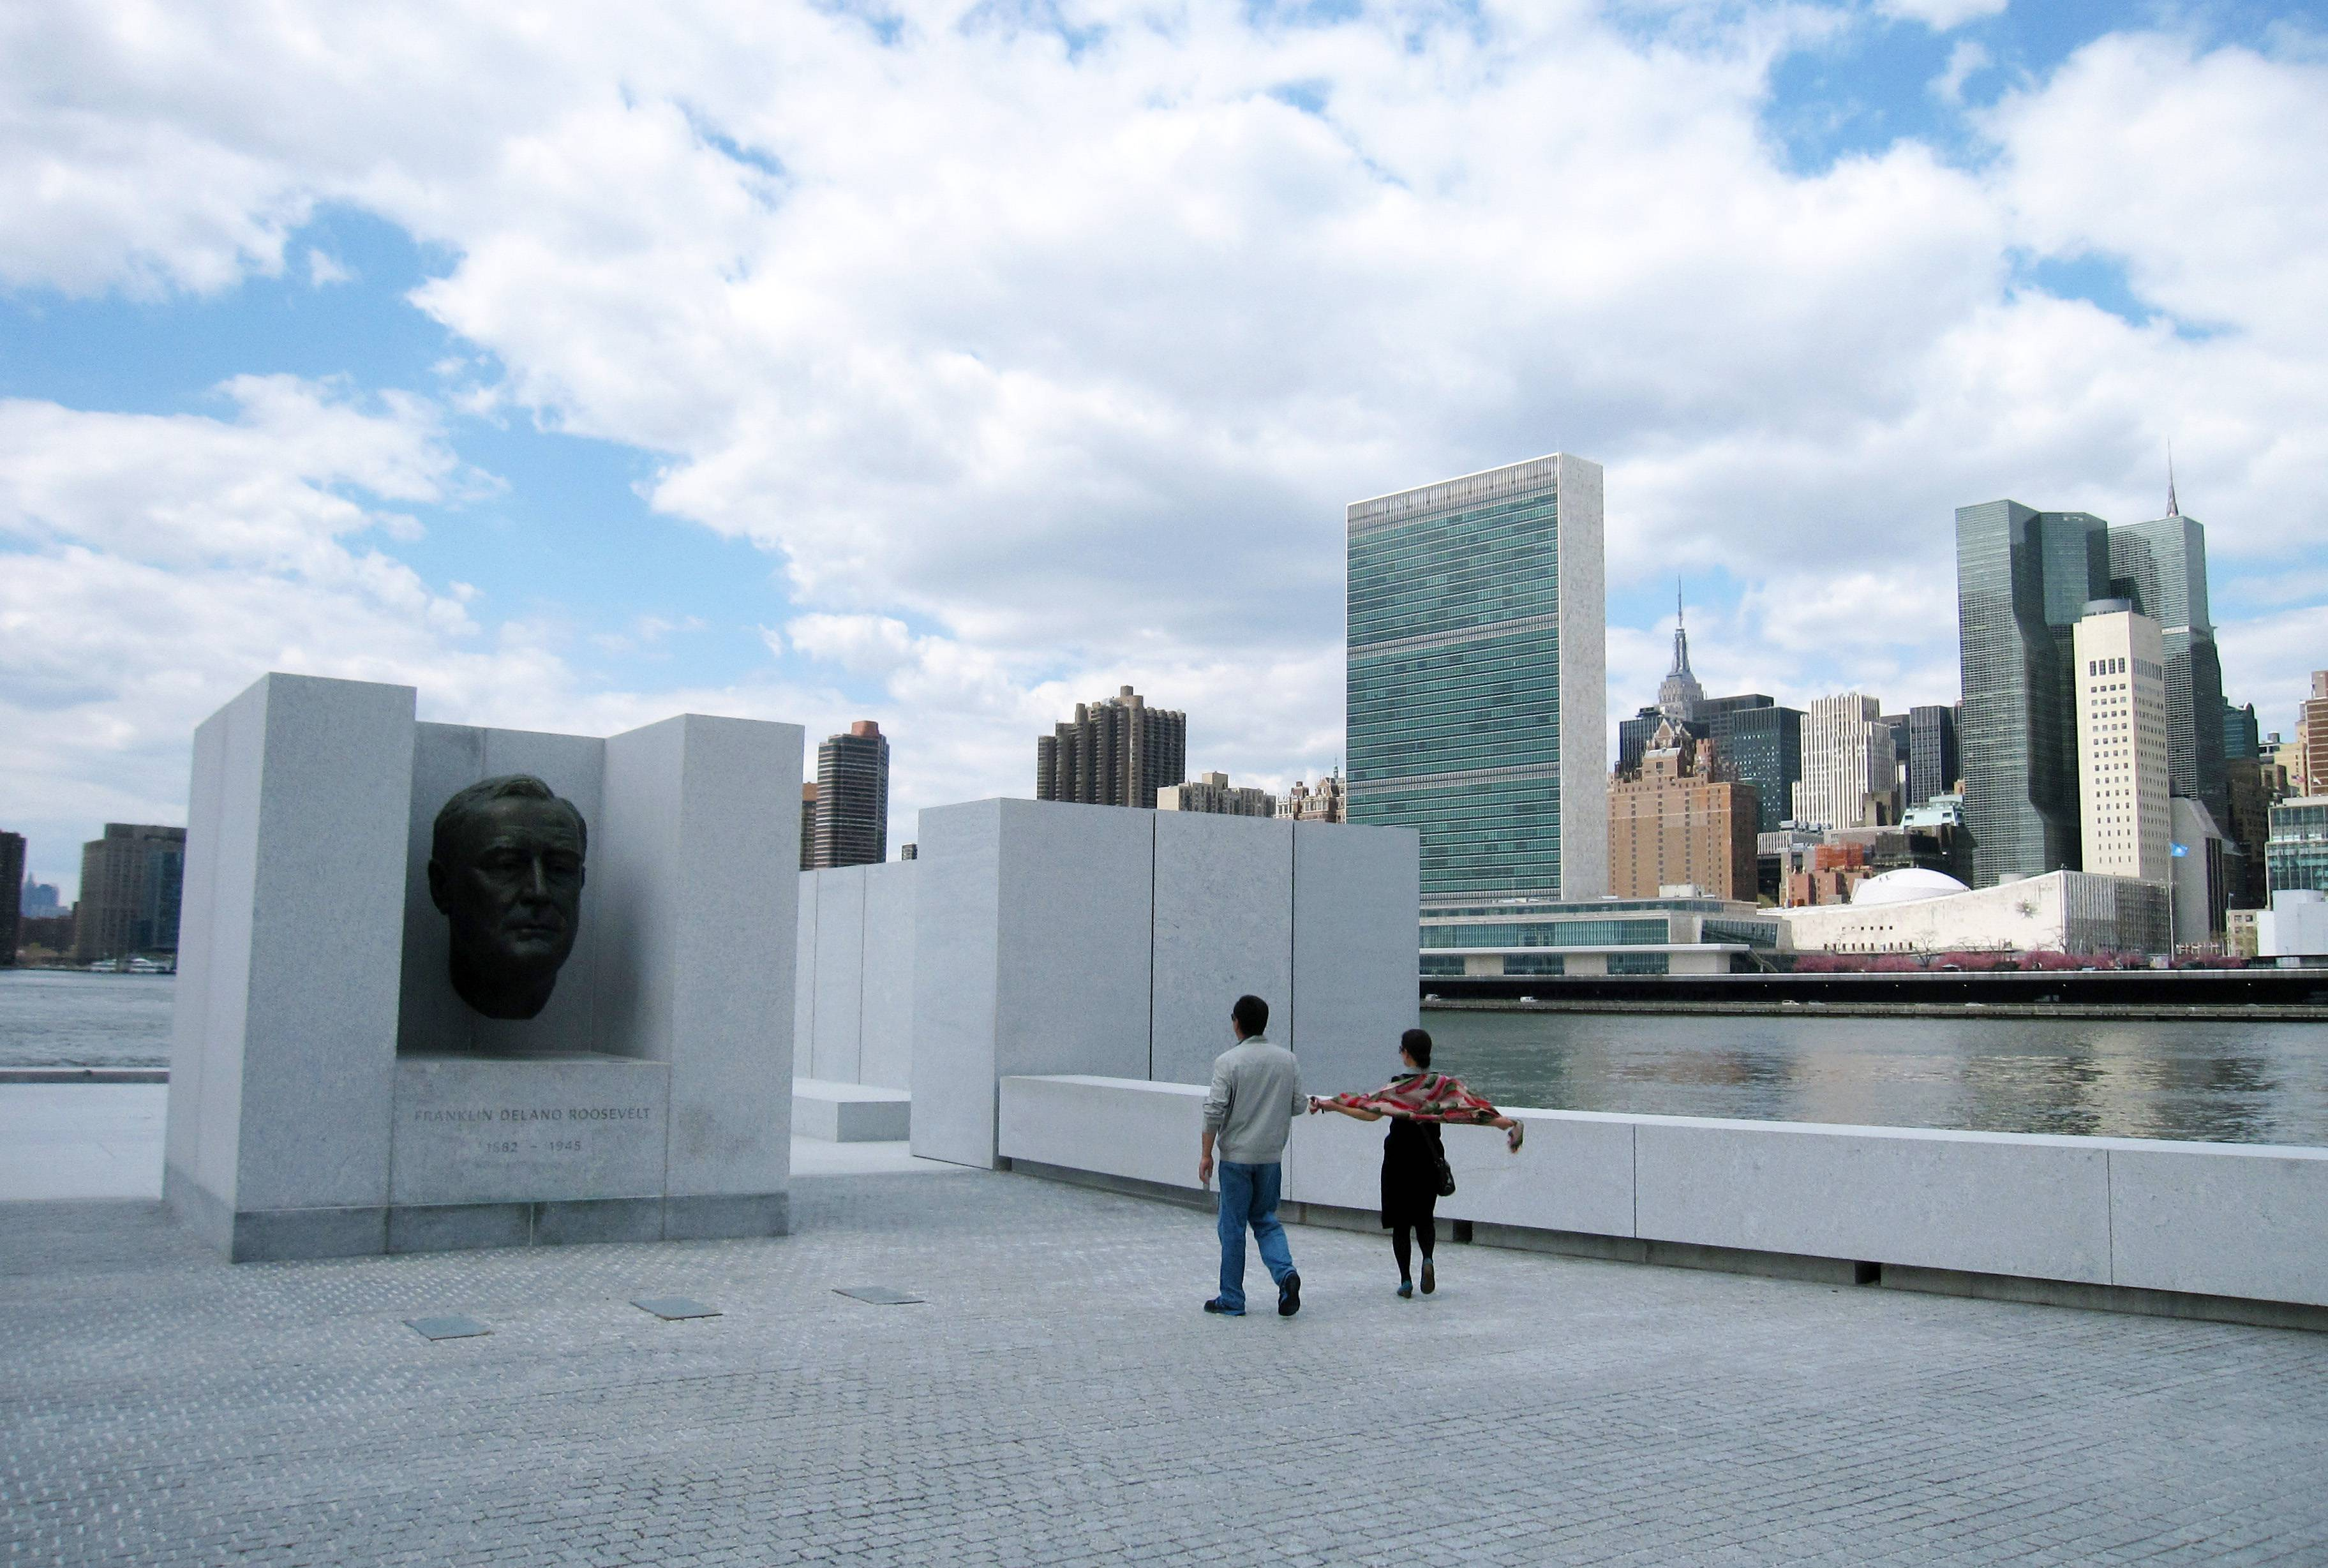 Visitors take pictures in front of a bust of President Franklin D. Roosevelt at Franklin D. Roosevelt Four Freedoms Park, located on Roosevelt Island in New York City. The park, designed by renowned architect Louis I. Kahn, is considered an architectural masterpiece and offers scenic views of the city, including the Manhattan skyline.